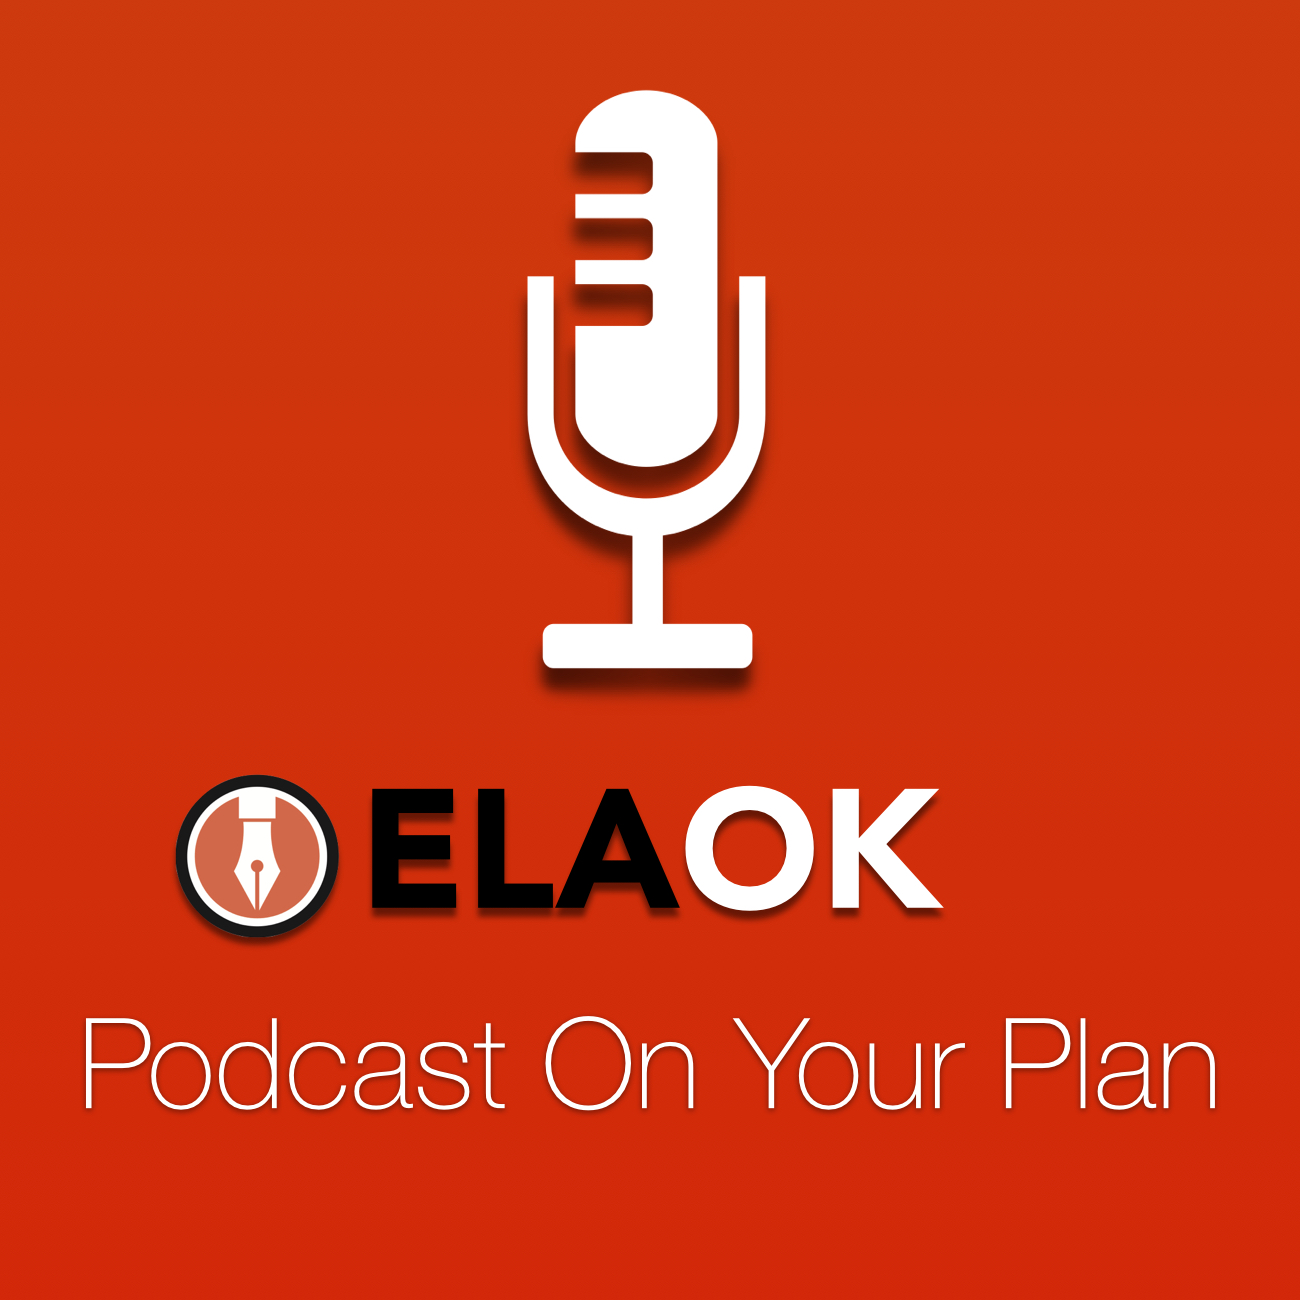 Podcast On Your Plan